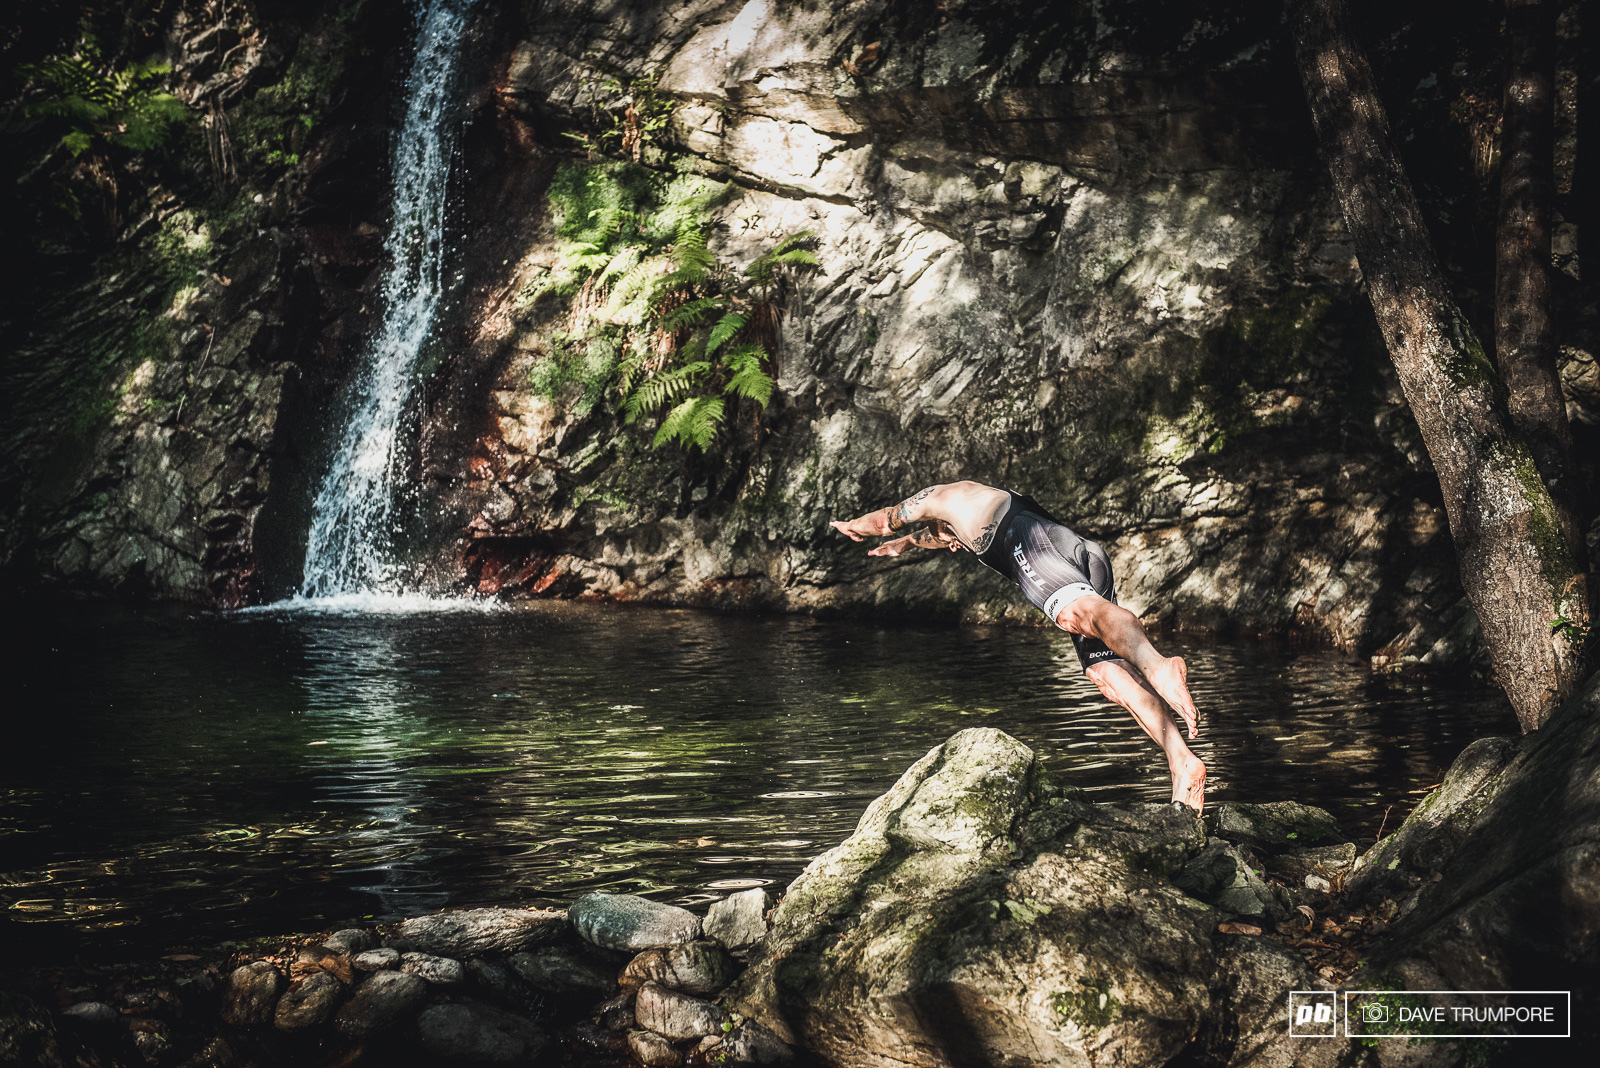 Stage 1 ends with a water fall and a swimming hole in case riders want to beat the heat and take a quick dip before pedaling back up the hill.